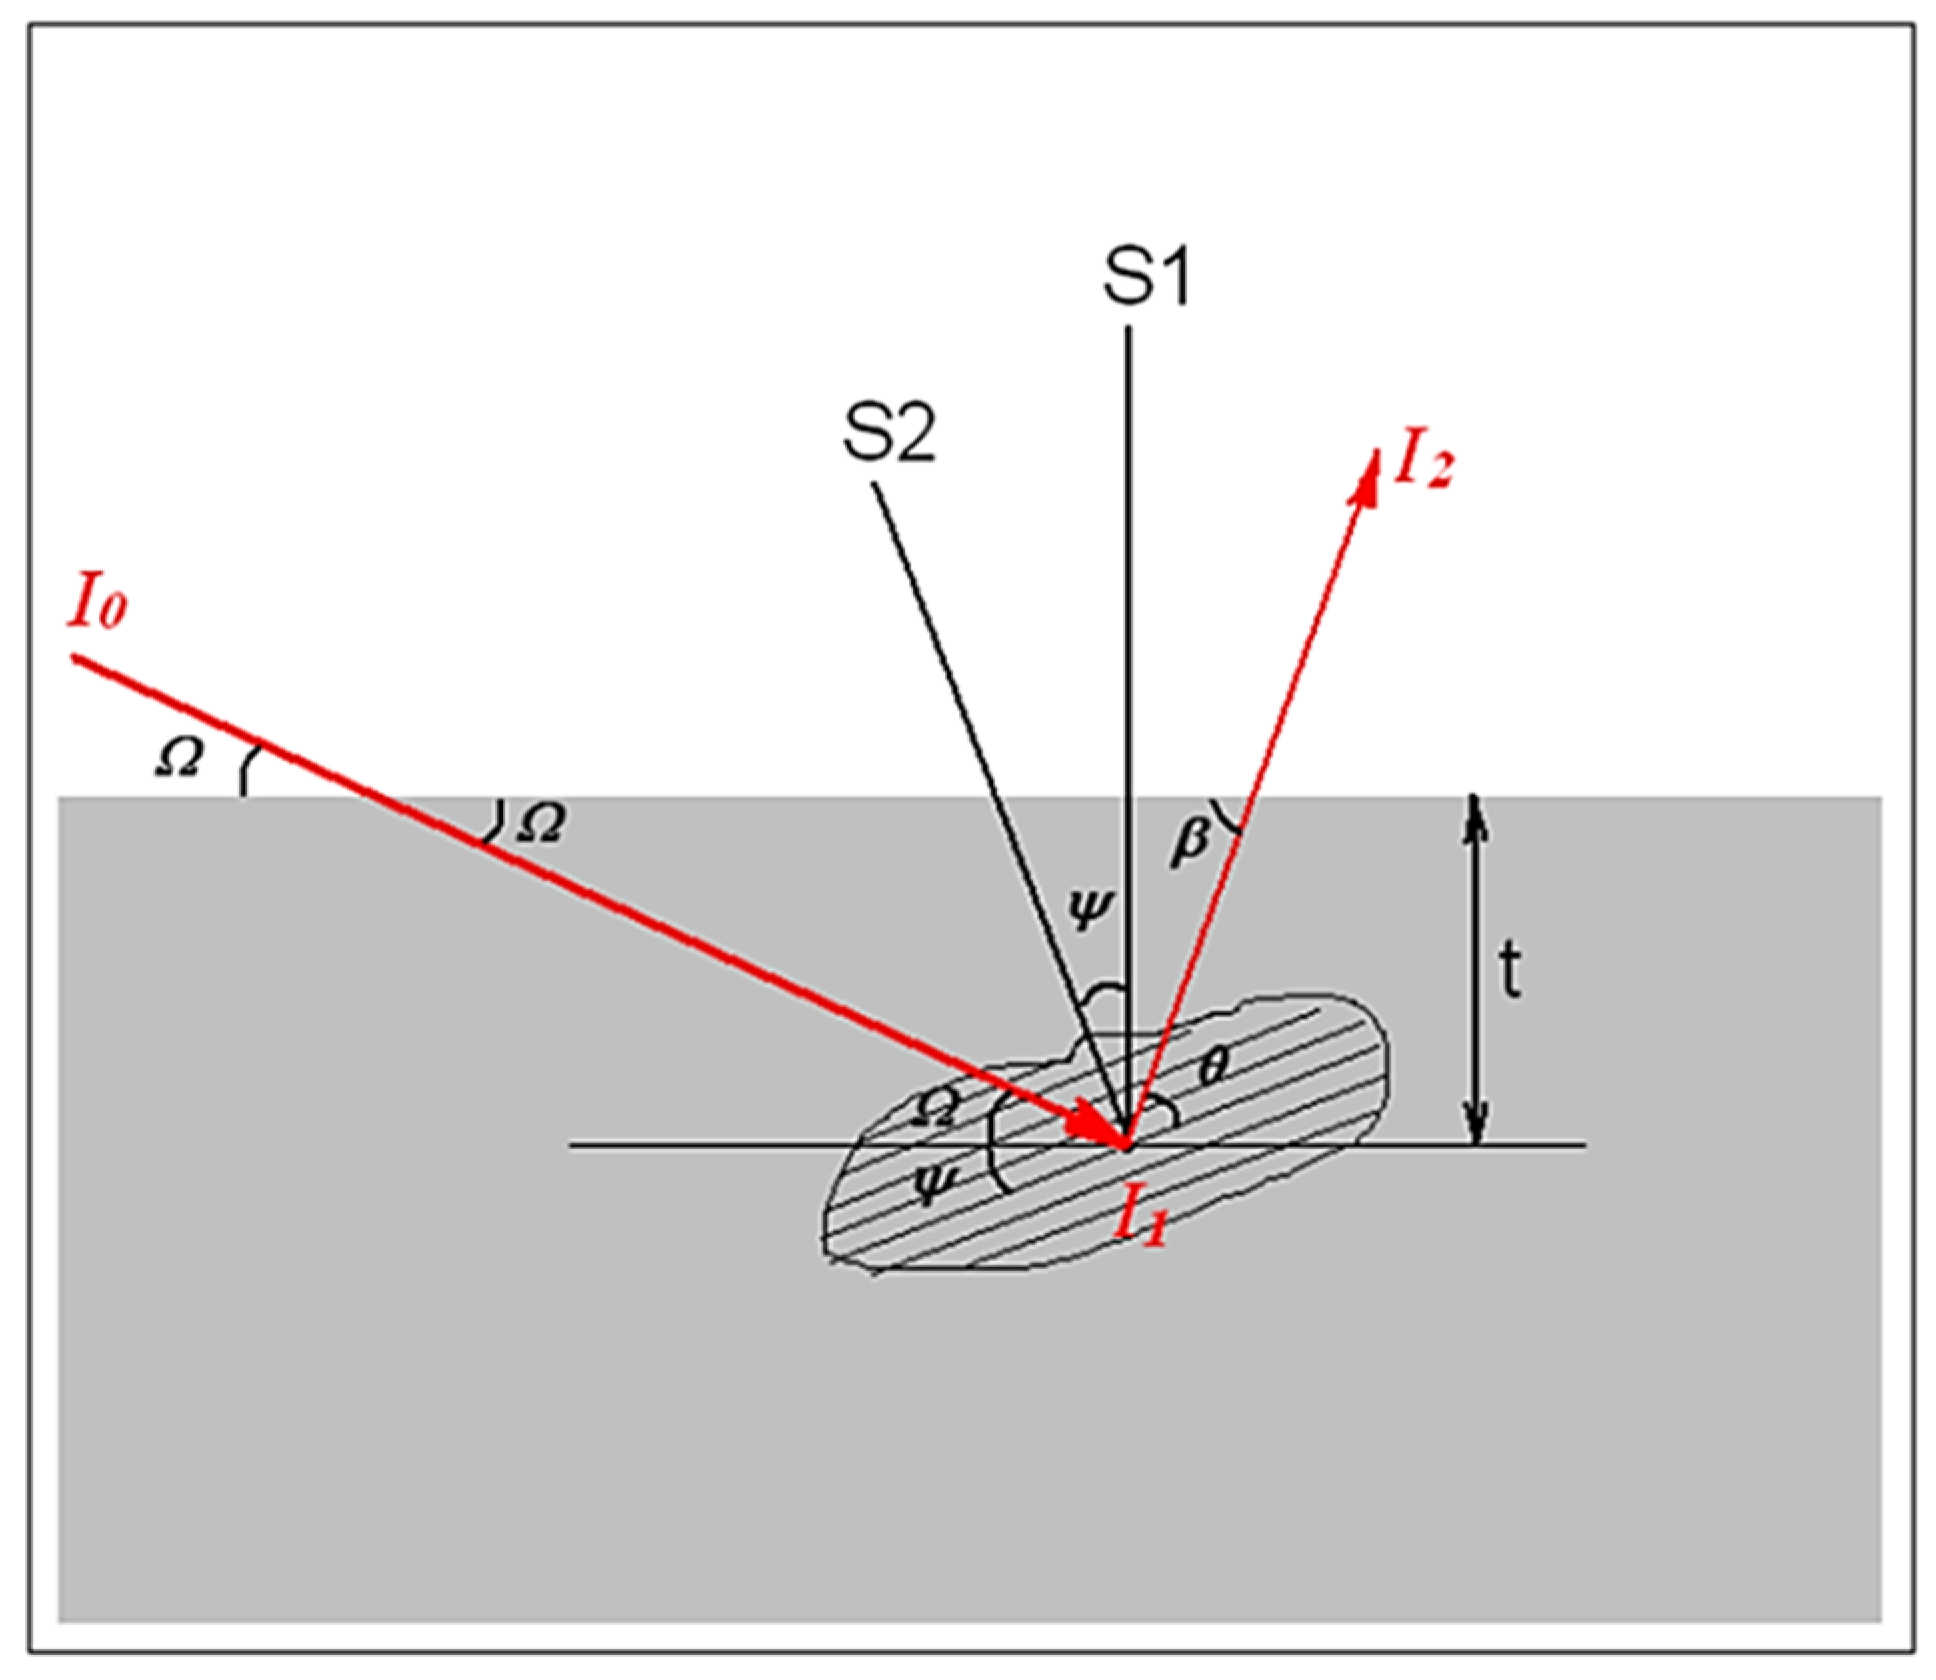 Coatings   Free Full-Text   Uncertainty of the X-ray ... on bragg diffraction, crystal diffraction, law of diffraction, diamond diffraction, grazing incidence diffraction, xrd diffraction, optical diffraction, dna diffraction, fiber diffraction, powder diffraction, gamma ray diffraction, laue diffraction,